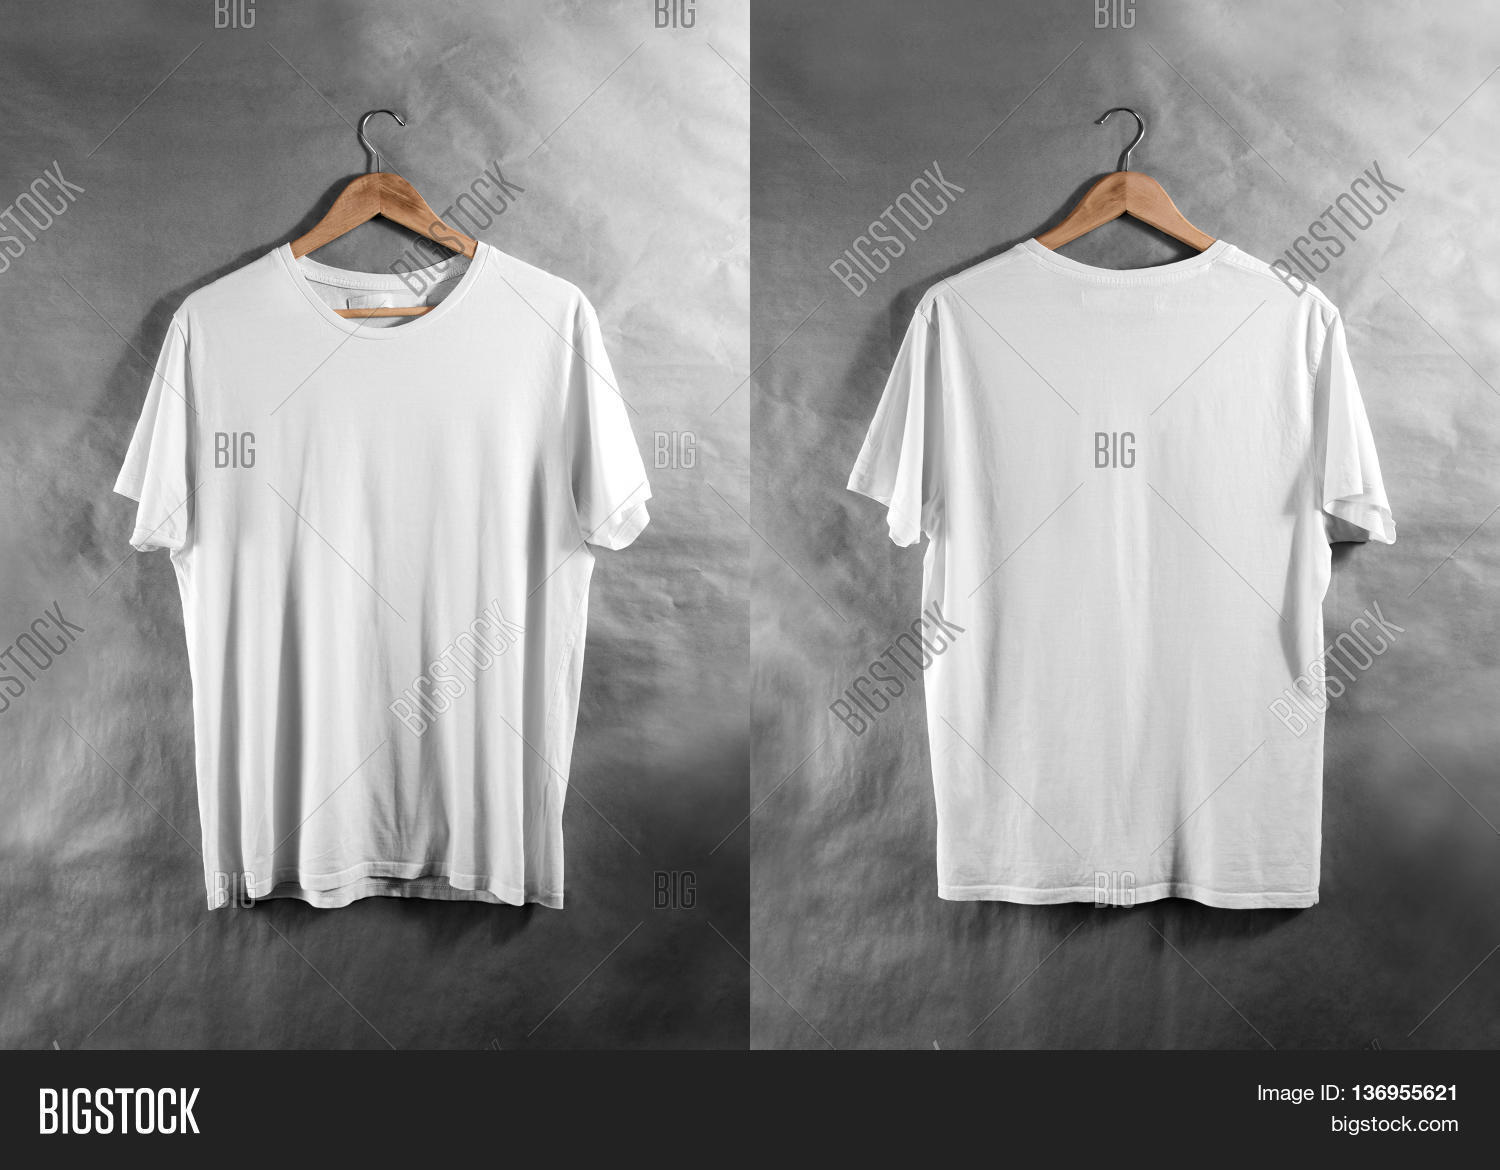 T shirt white mockup - Blank White T Shirt Front And Back Side View On Hanger Design Mockup Clear Plain Cotton Tshirt